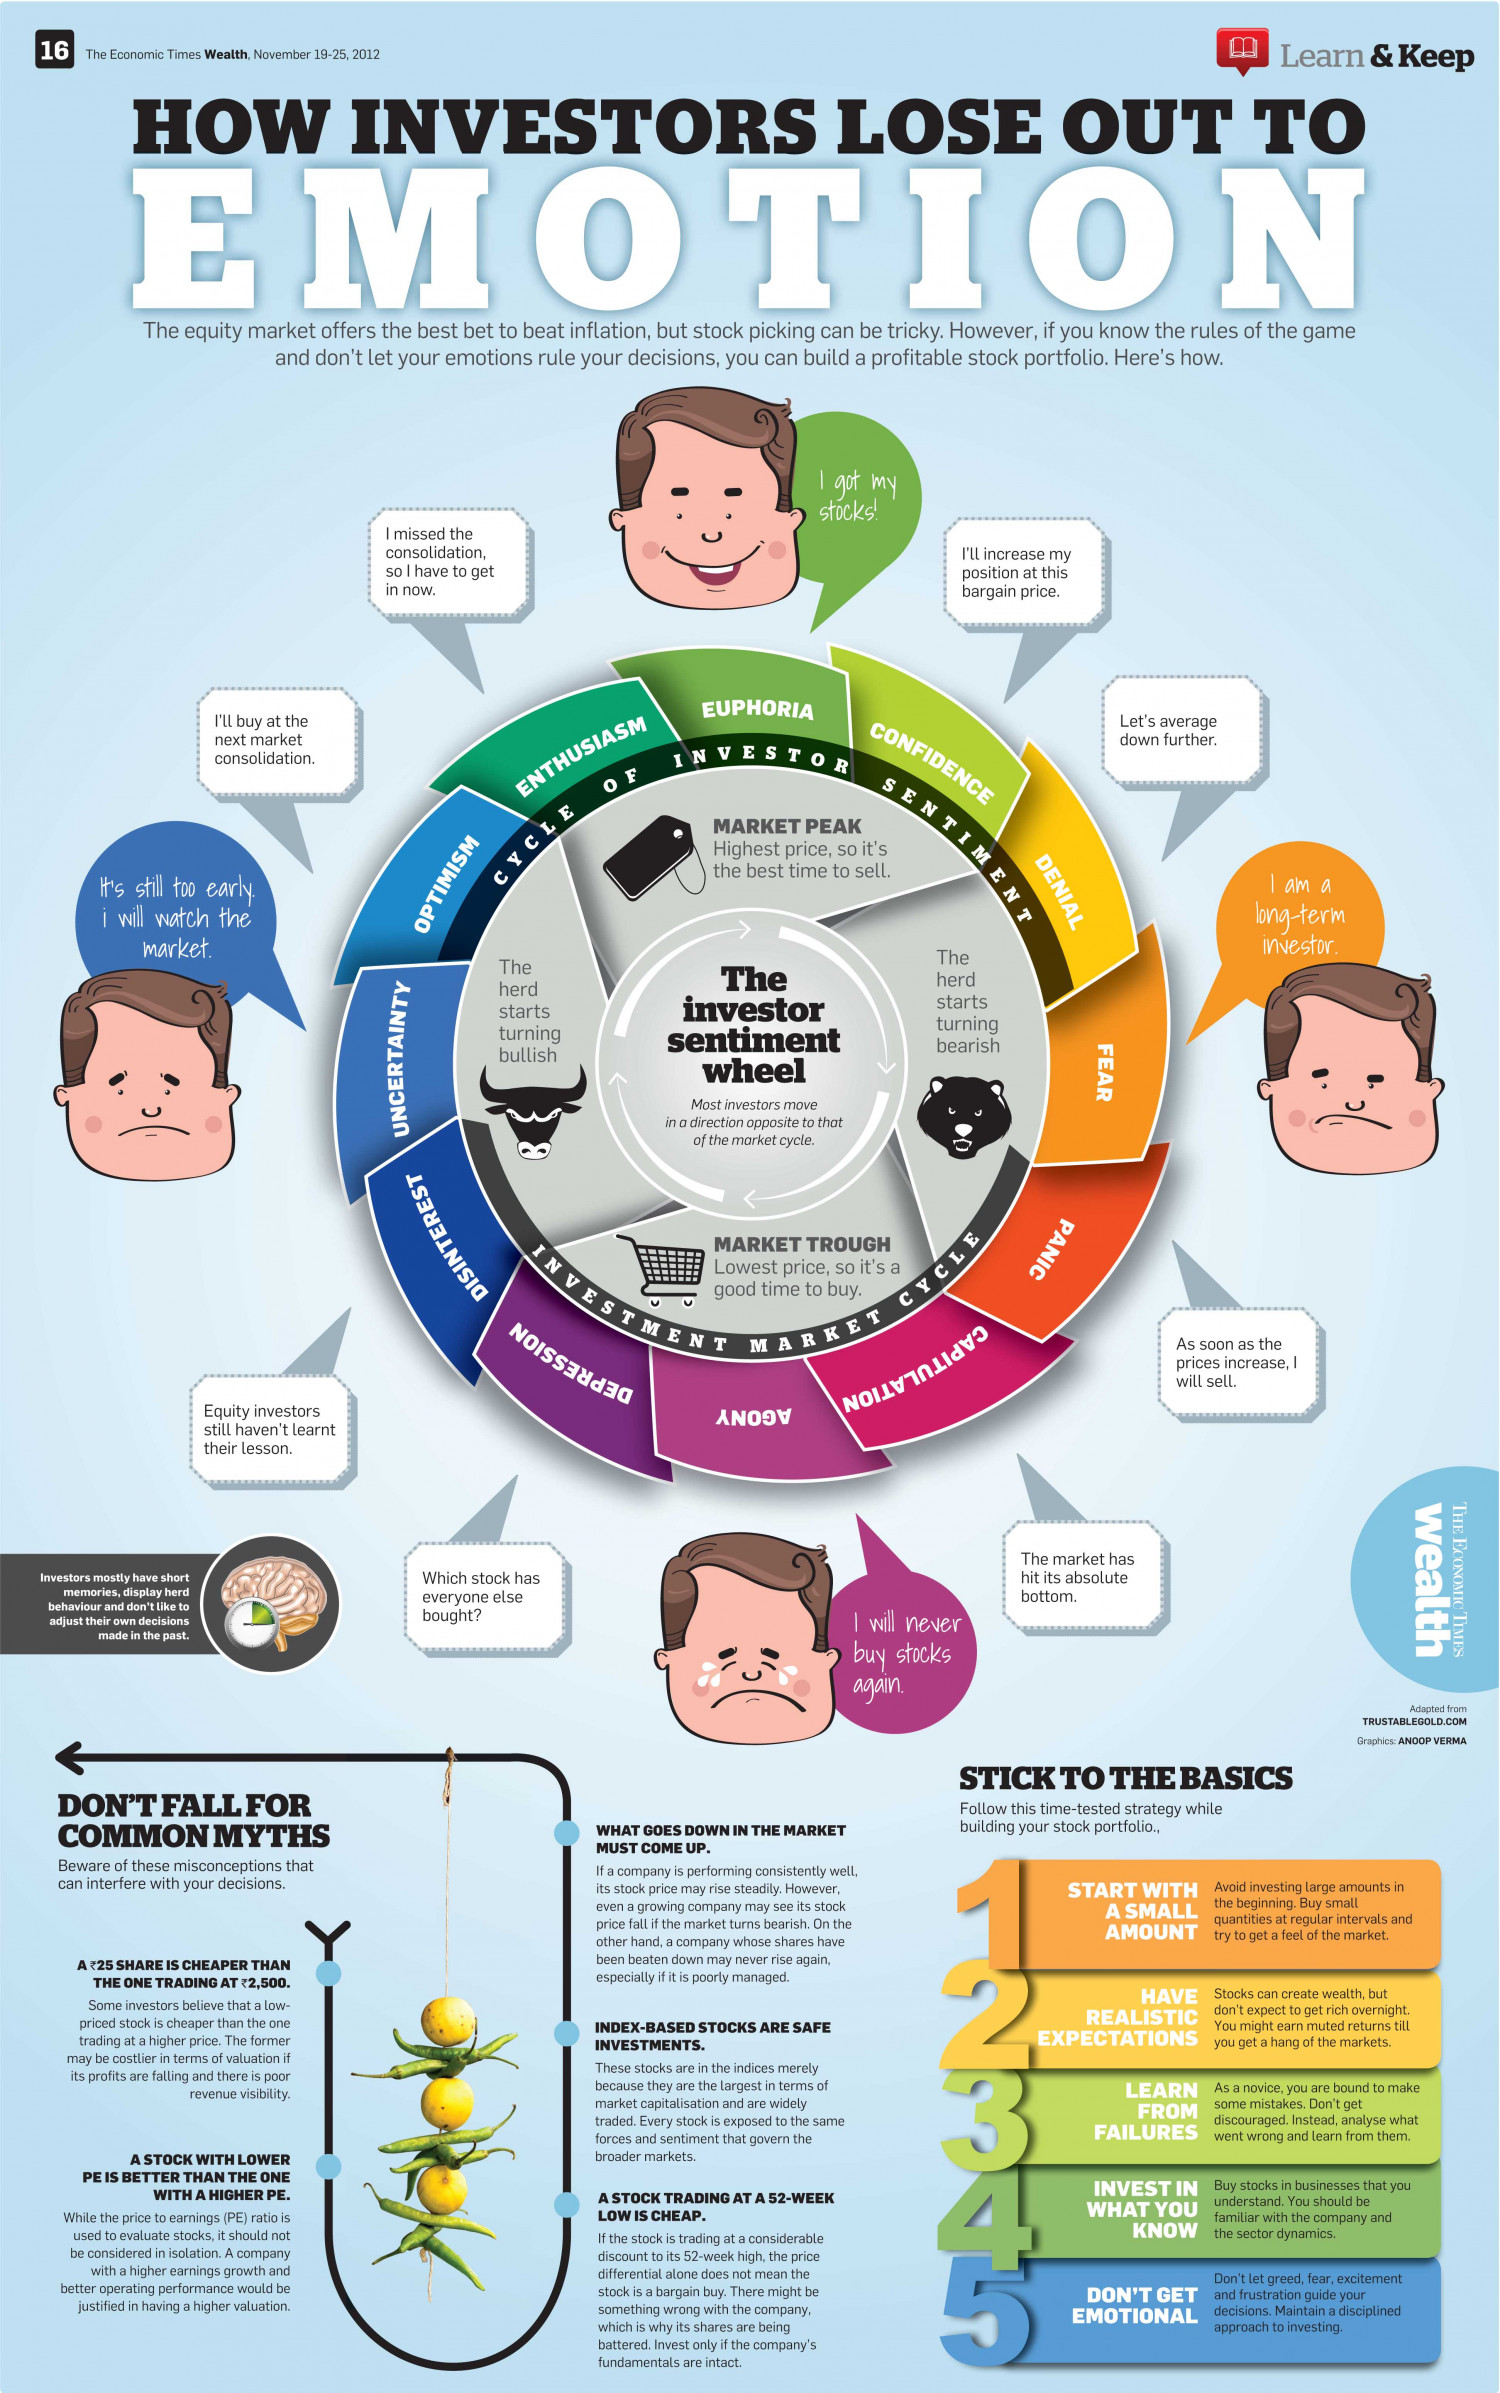 Investors-EMOTION Infographic